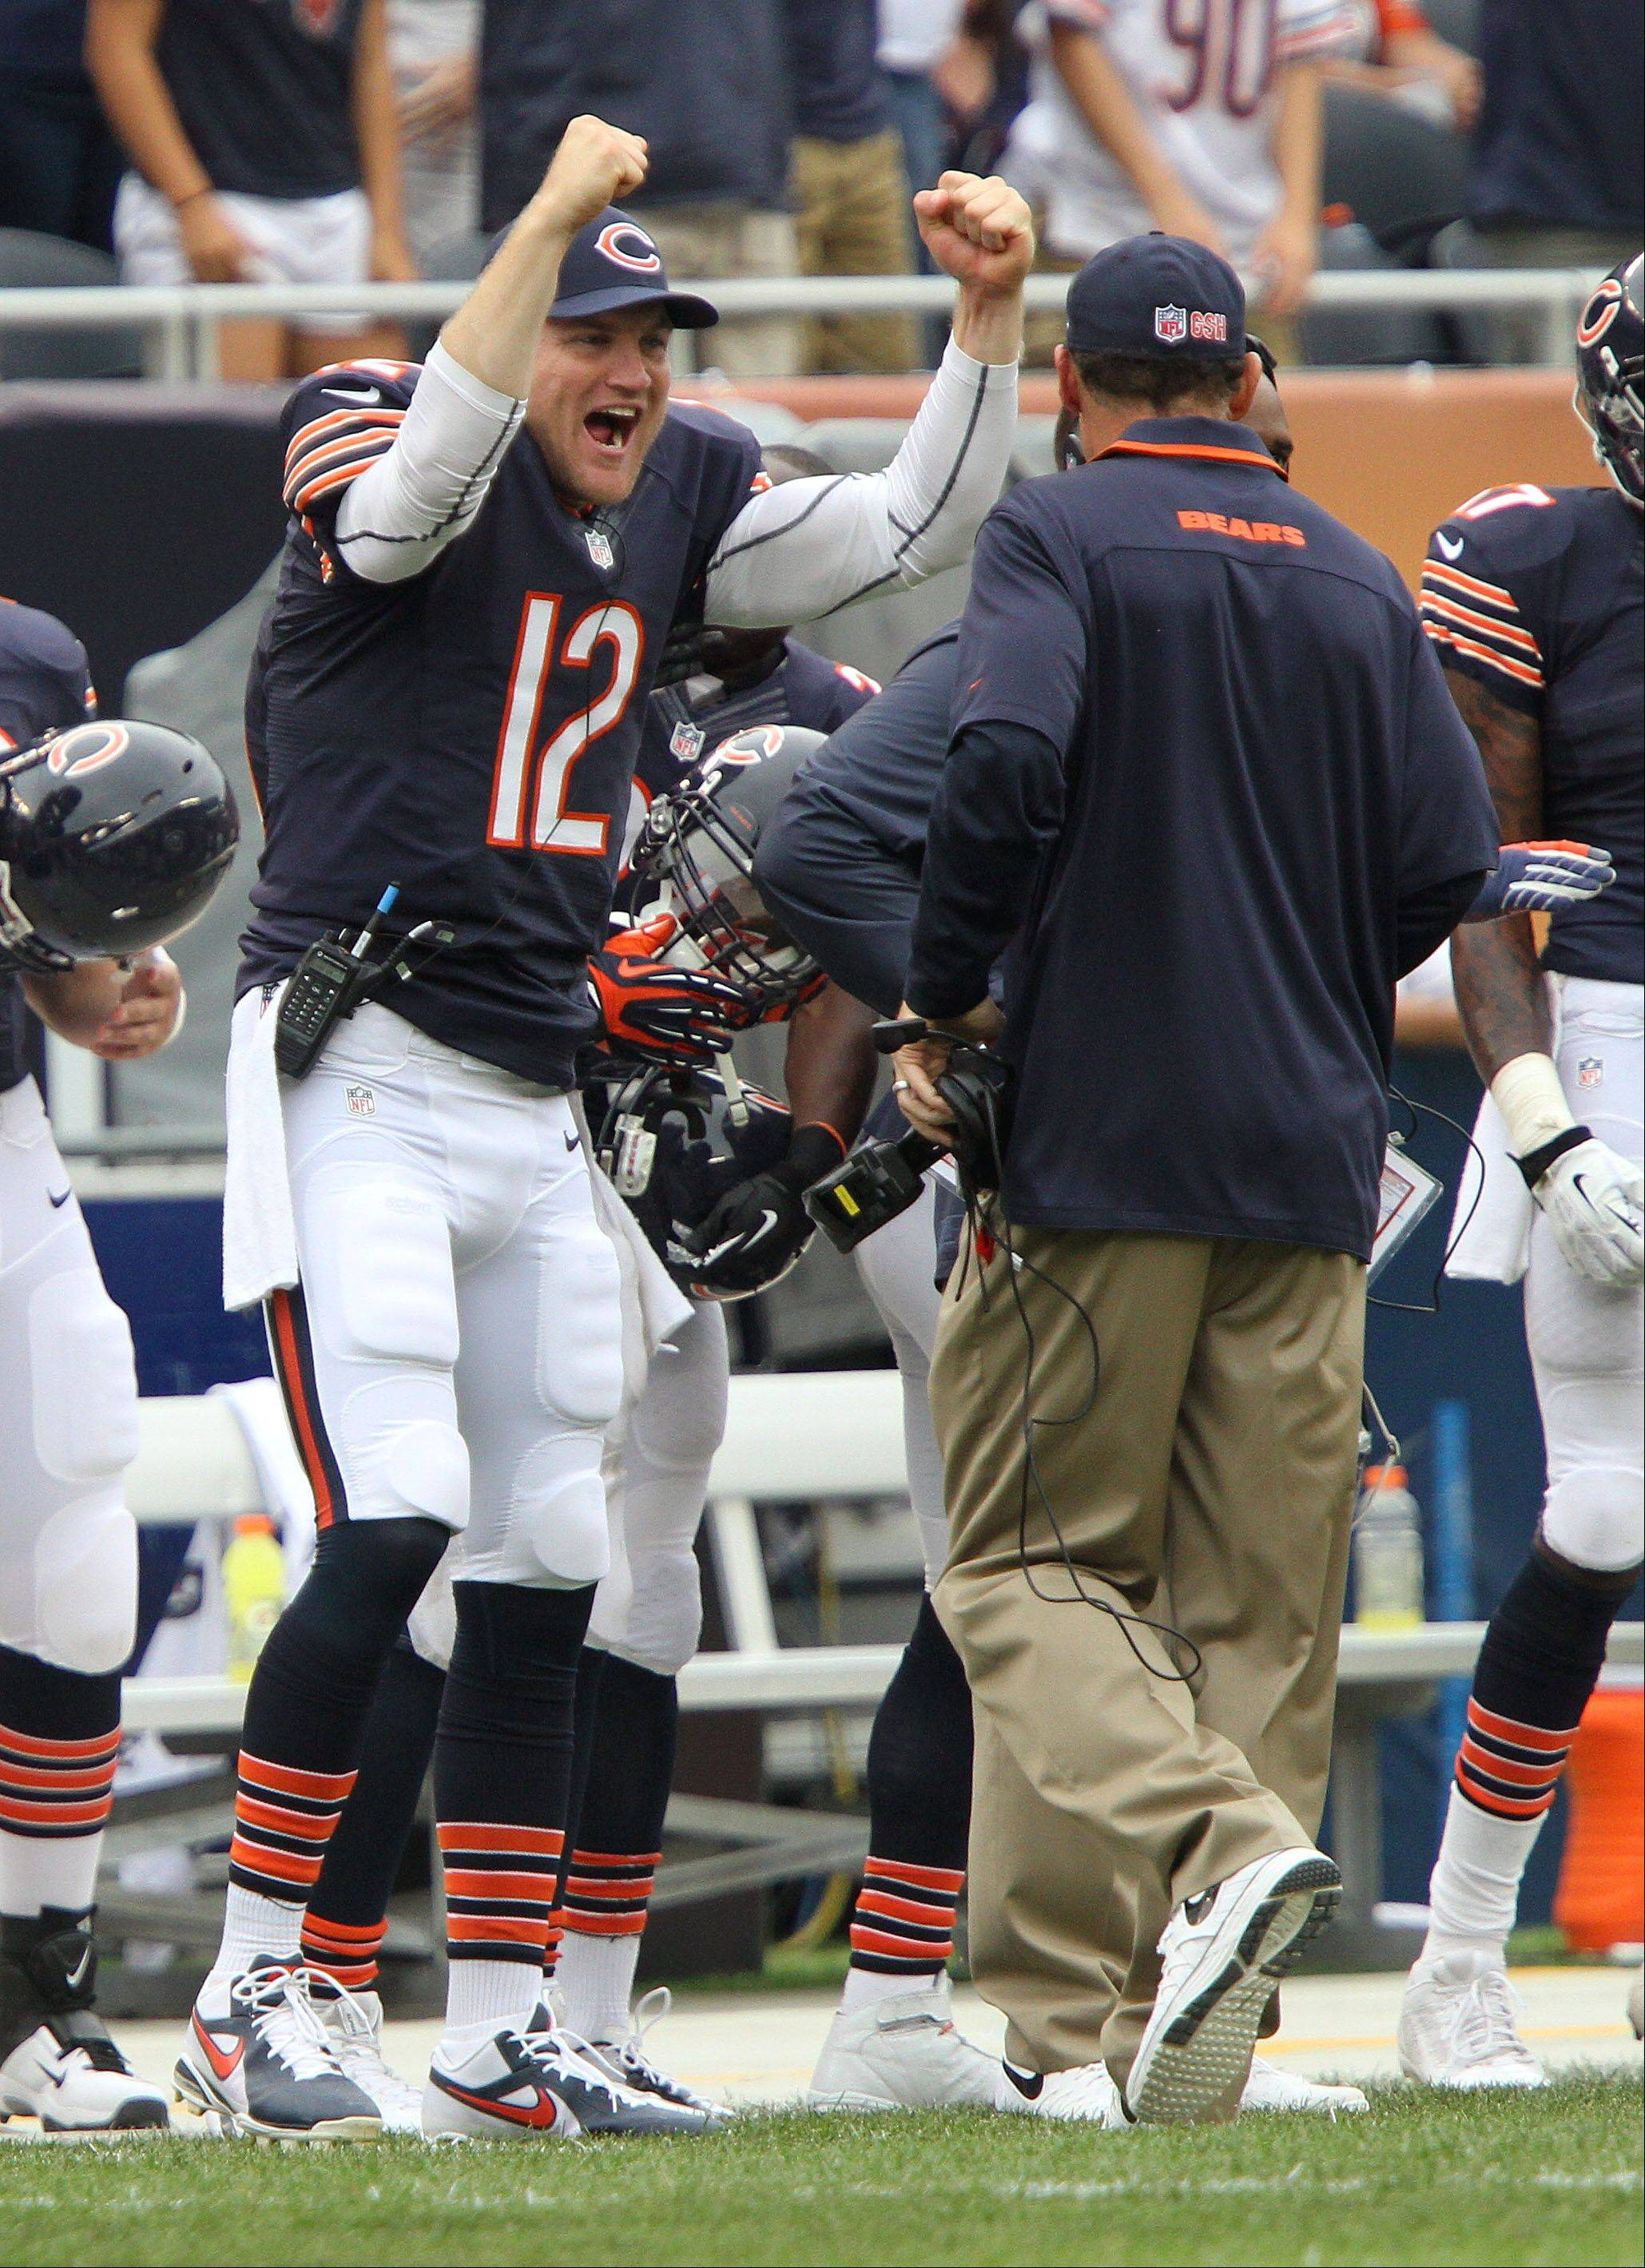 Chicago Bears quarterback Josh McCown cheers at head coach Marc Trestman after their opening day win over the Bengals Sunday at Soldier Field in Chicago.